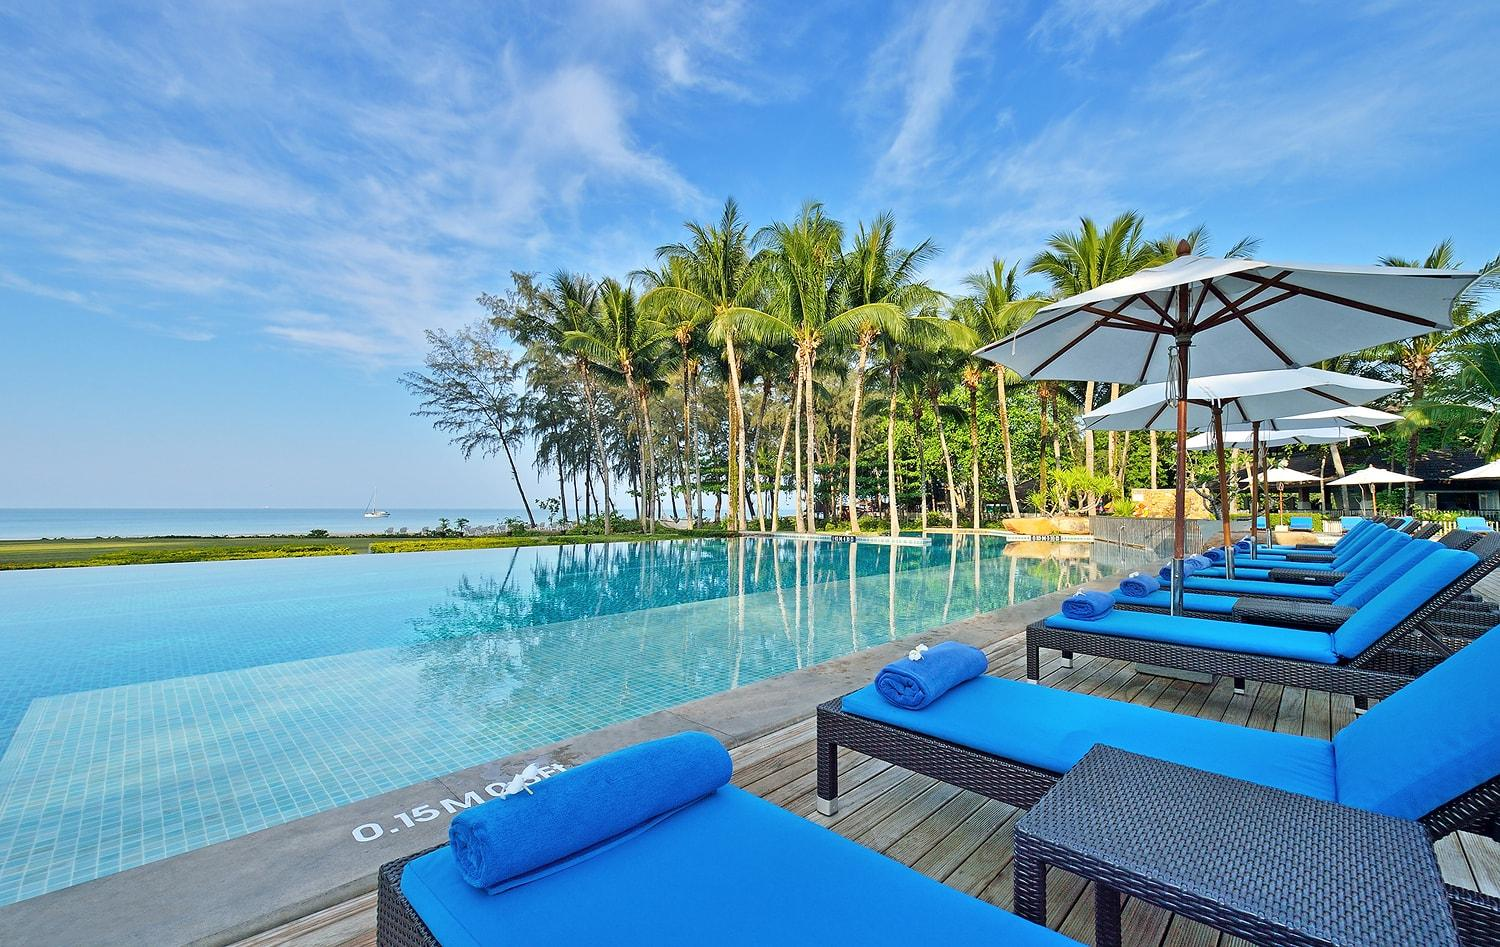 Dusit Thani Krabi Beach Resort - Krabi